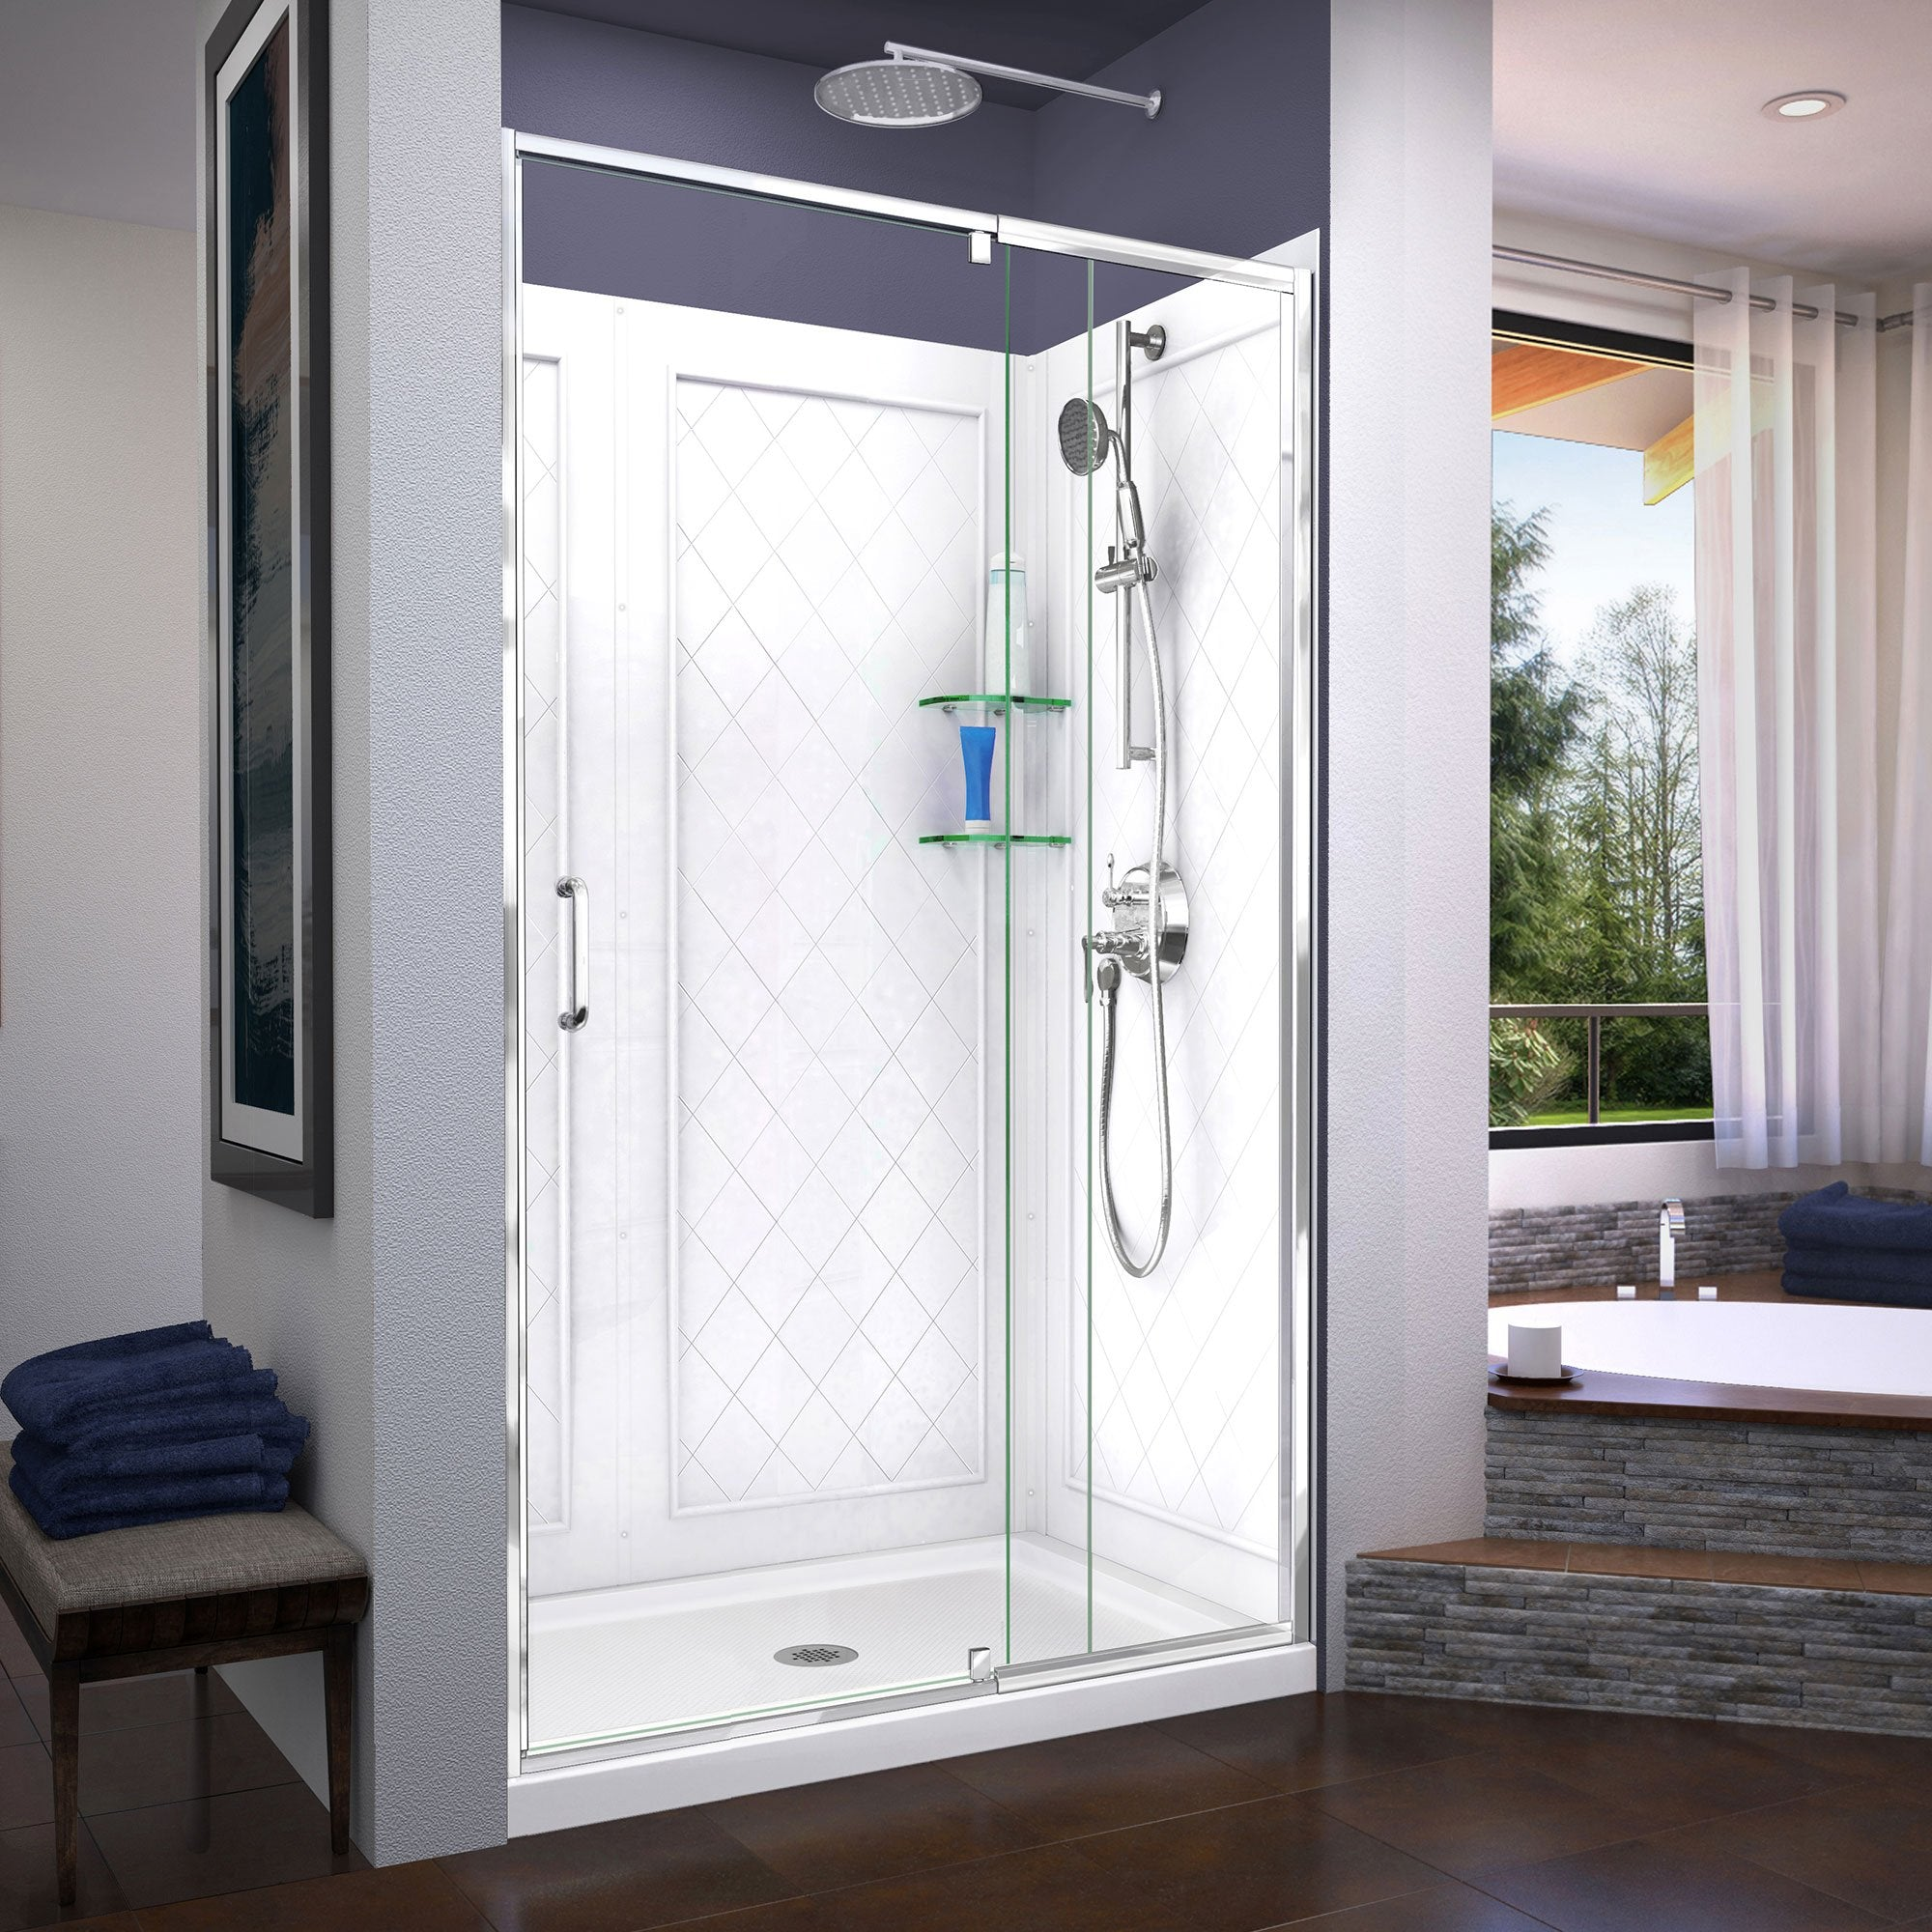 Dreamline Dl 6226c 01 Flex 36 In D X 48 In W X 76 3 4 In H Semi Frameless Shower Door In Chrome With Center Drain White Base And Backwalls